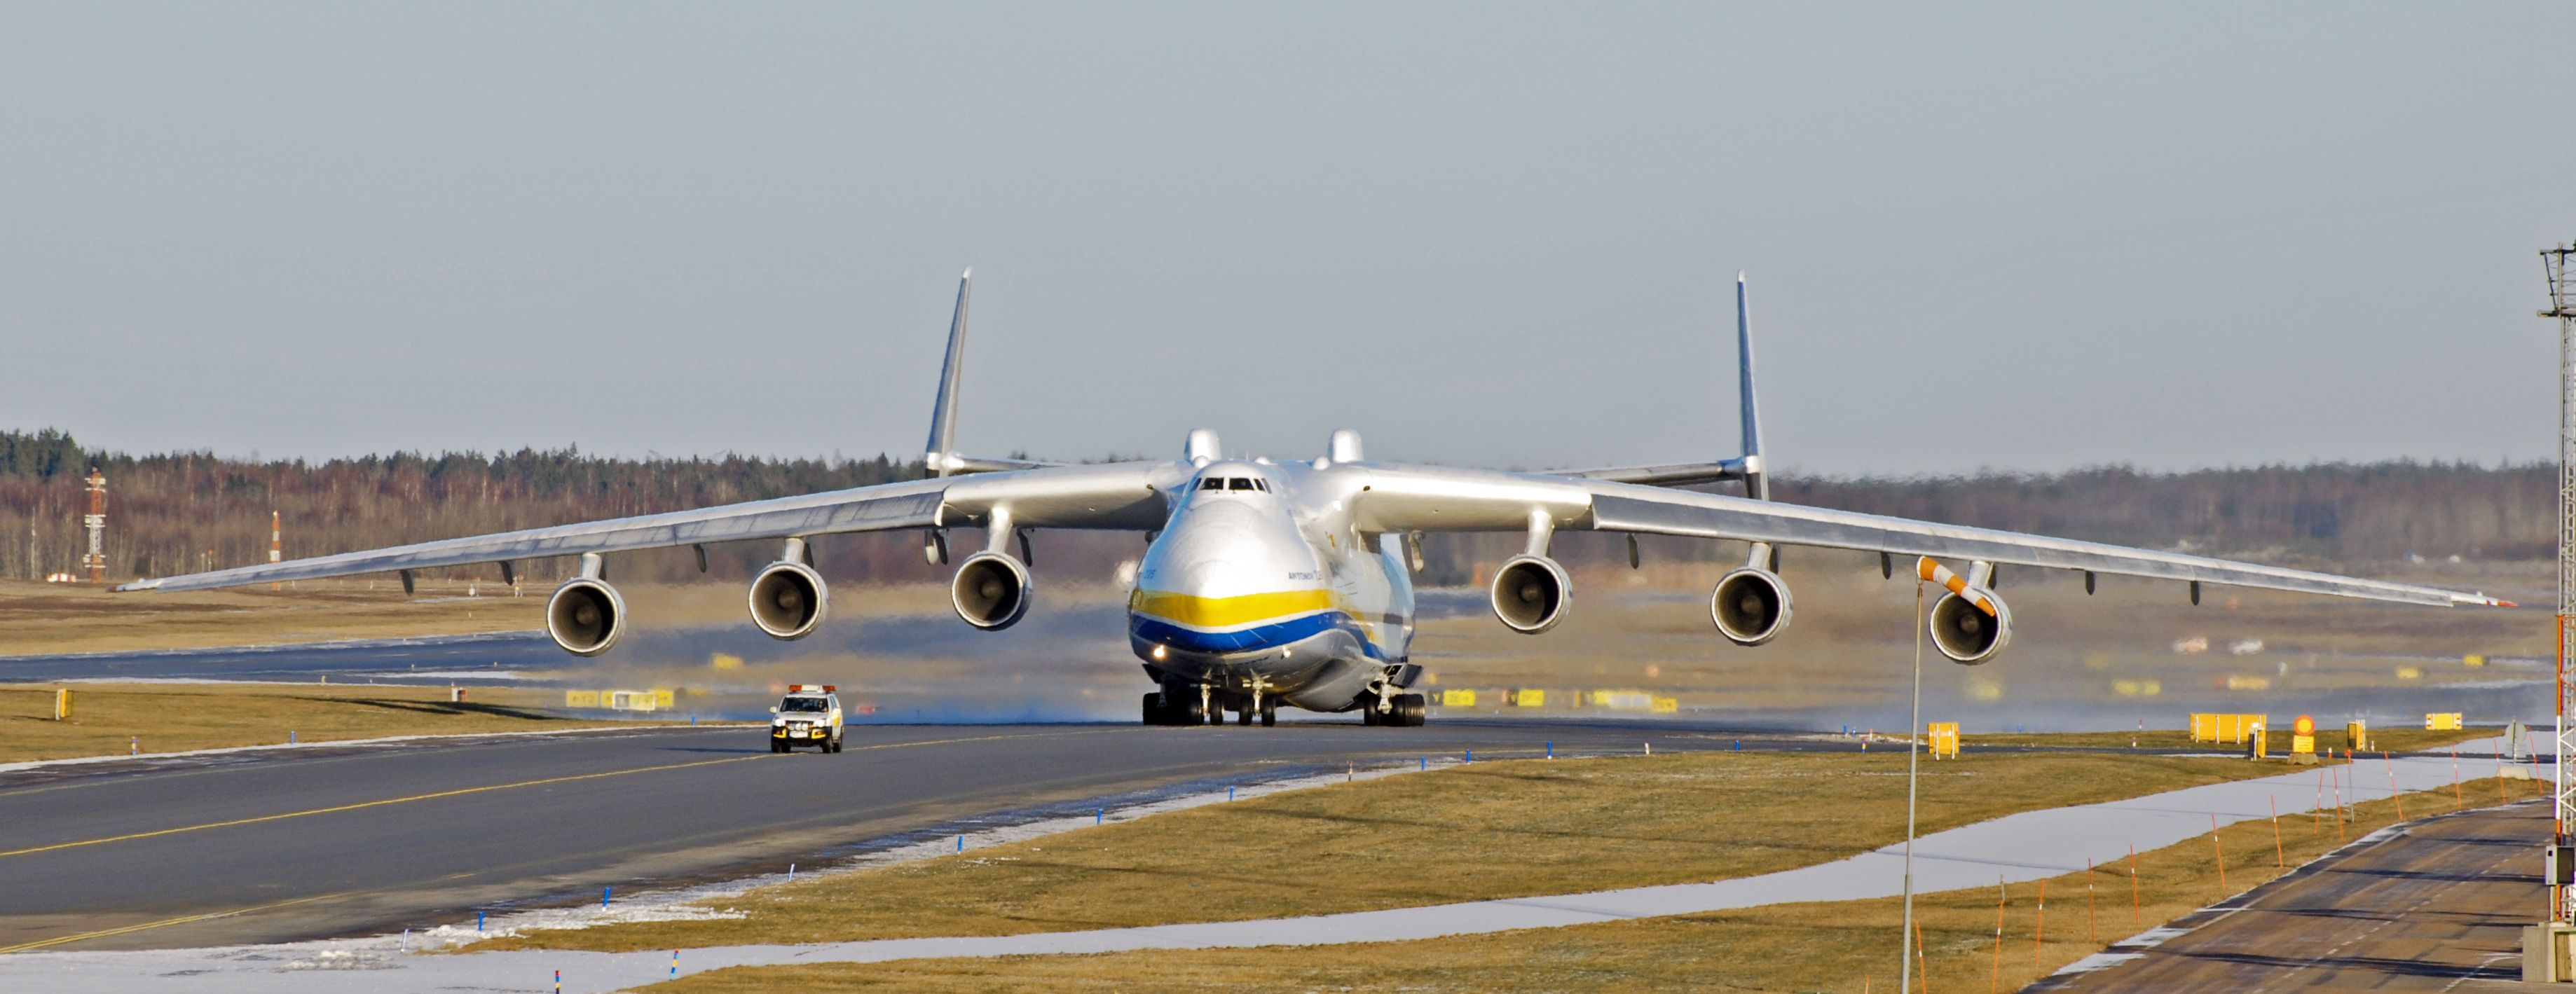 Extreme Machines: Antonov An-225 Is The World's Biggest Plane